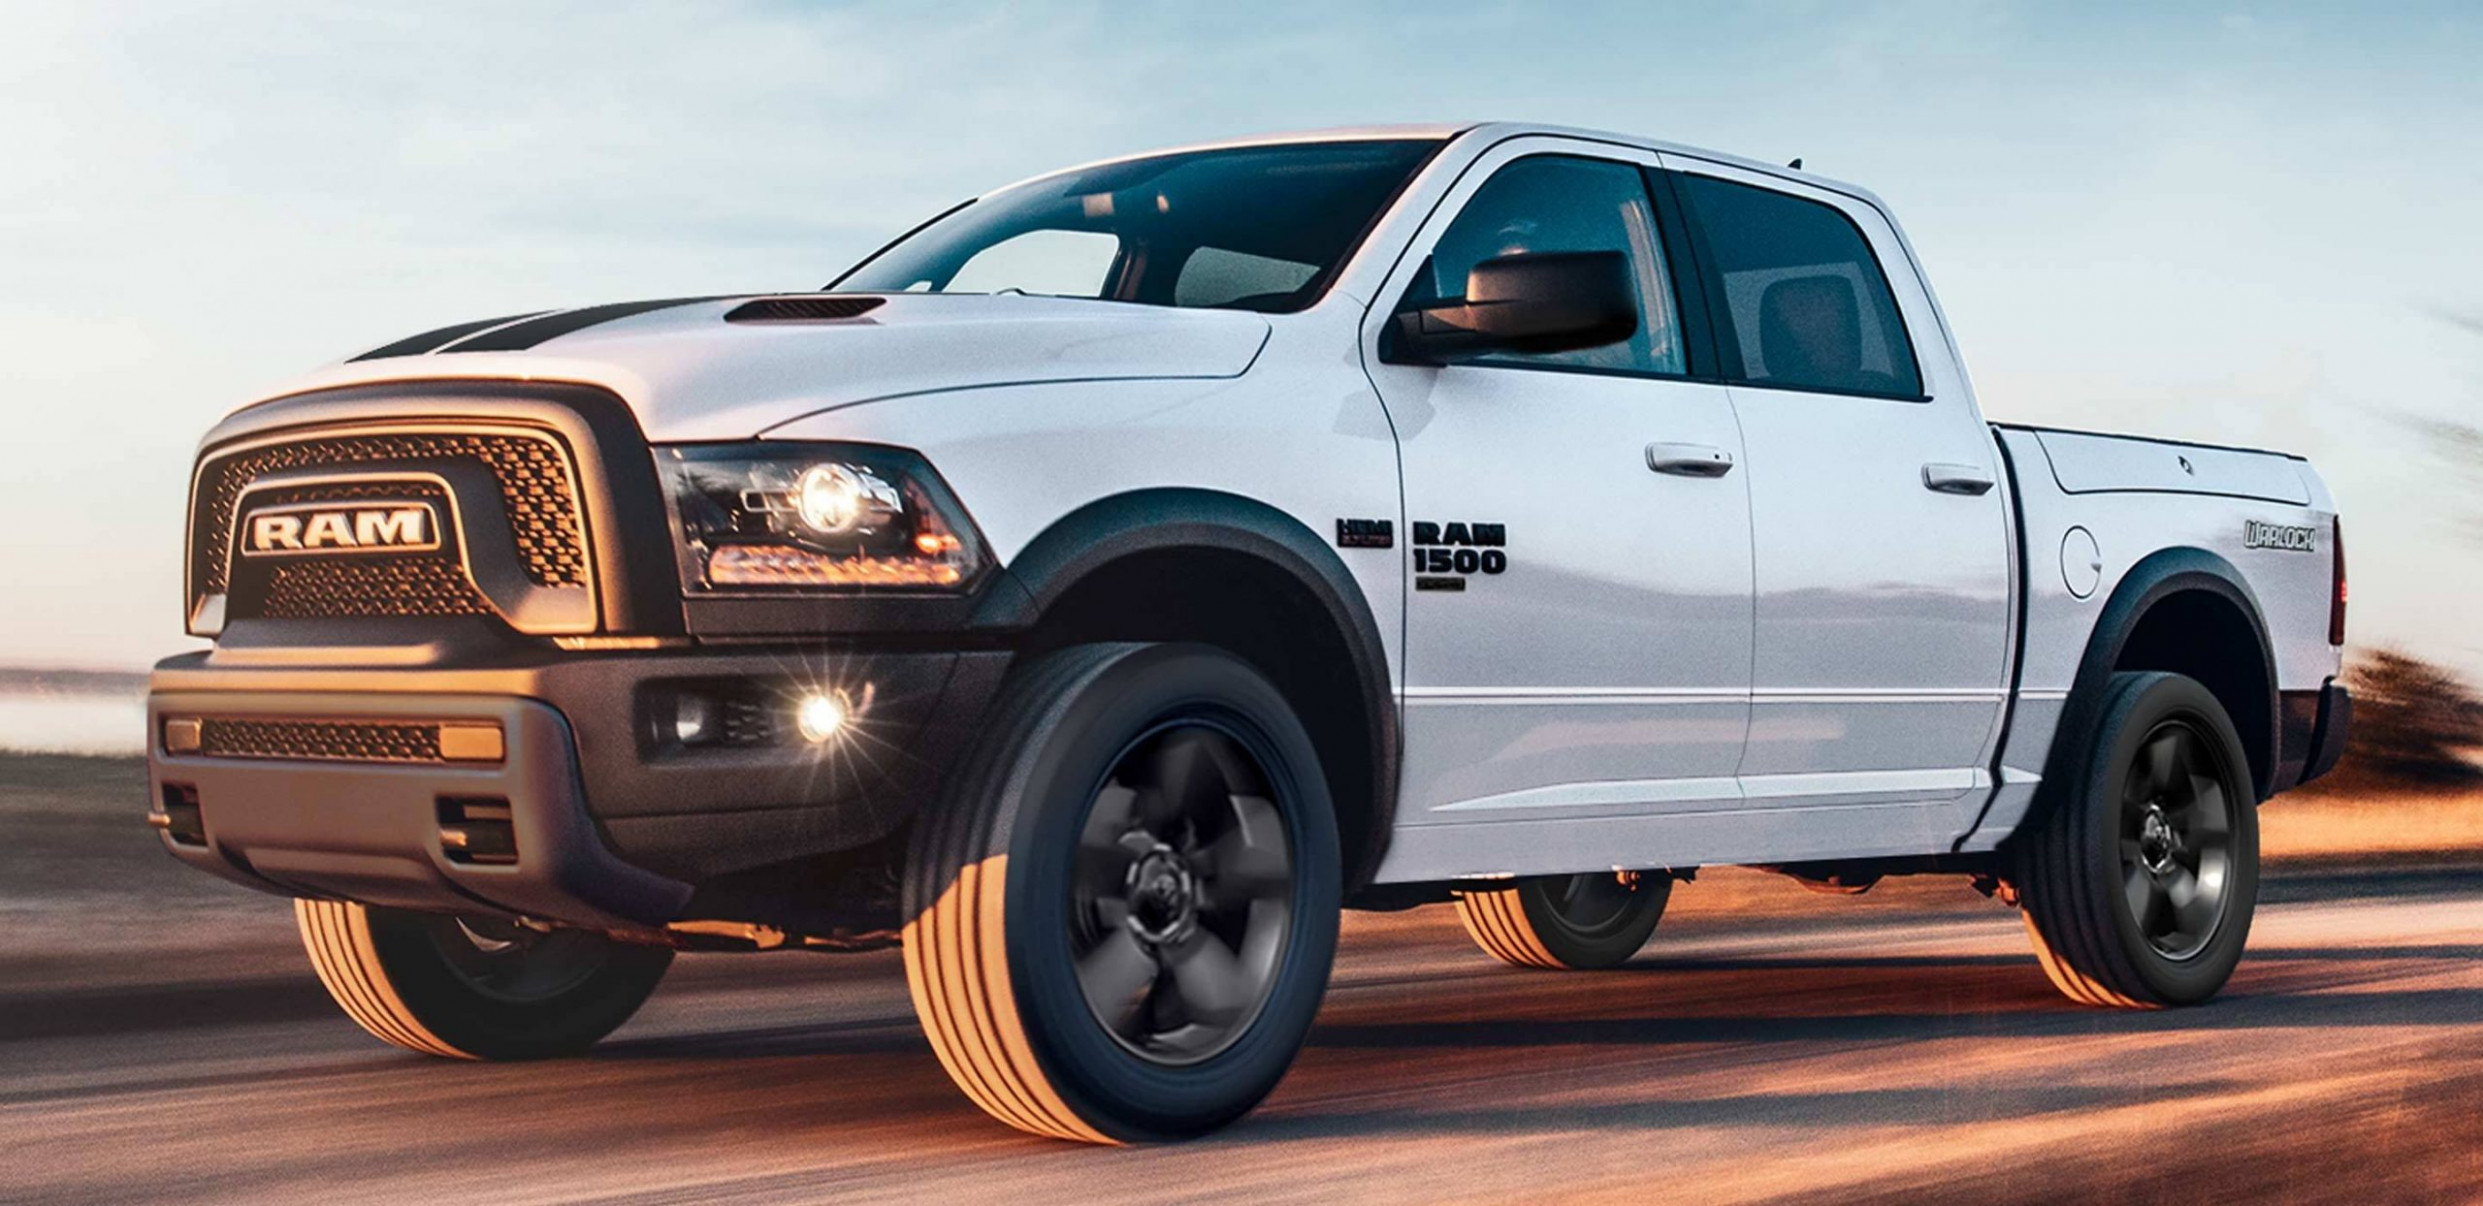 6 Ram 6 Classic Warlock Options & Pricing: - Mopar Insiders